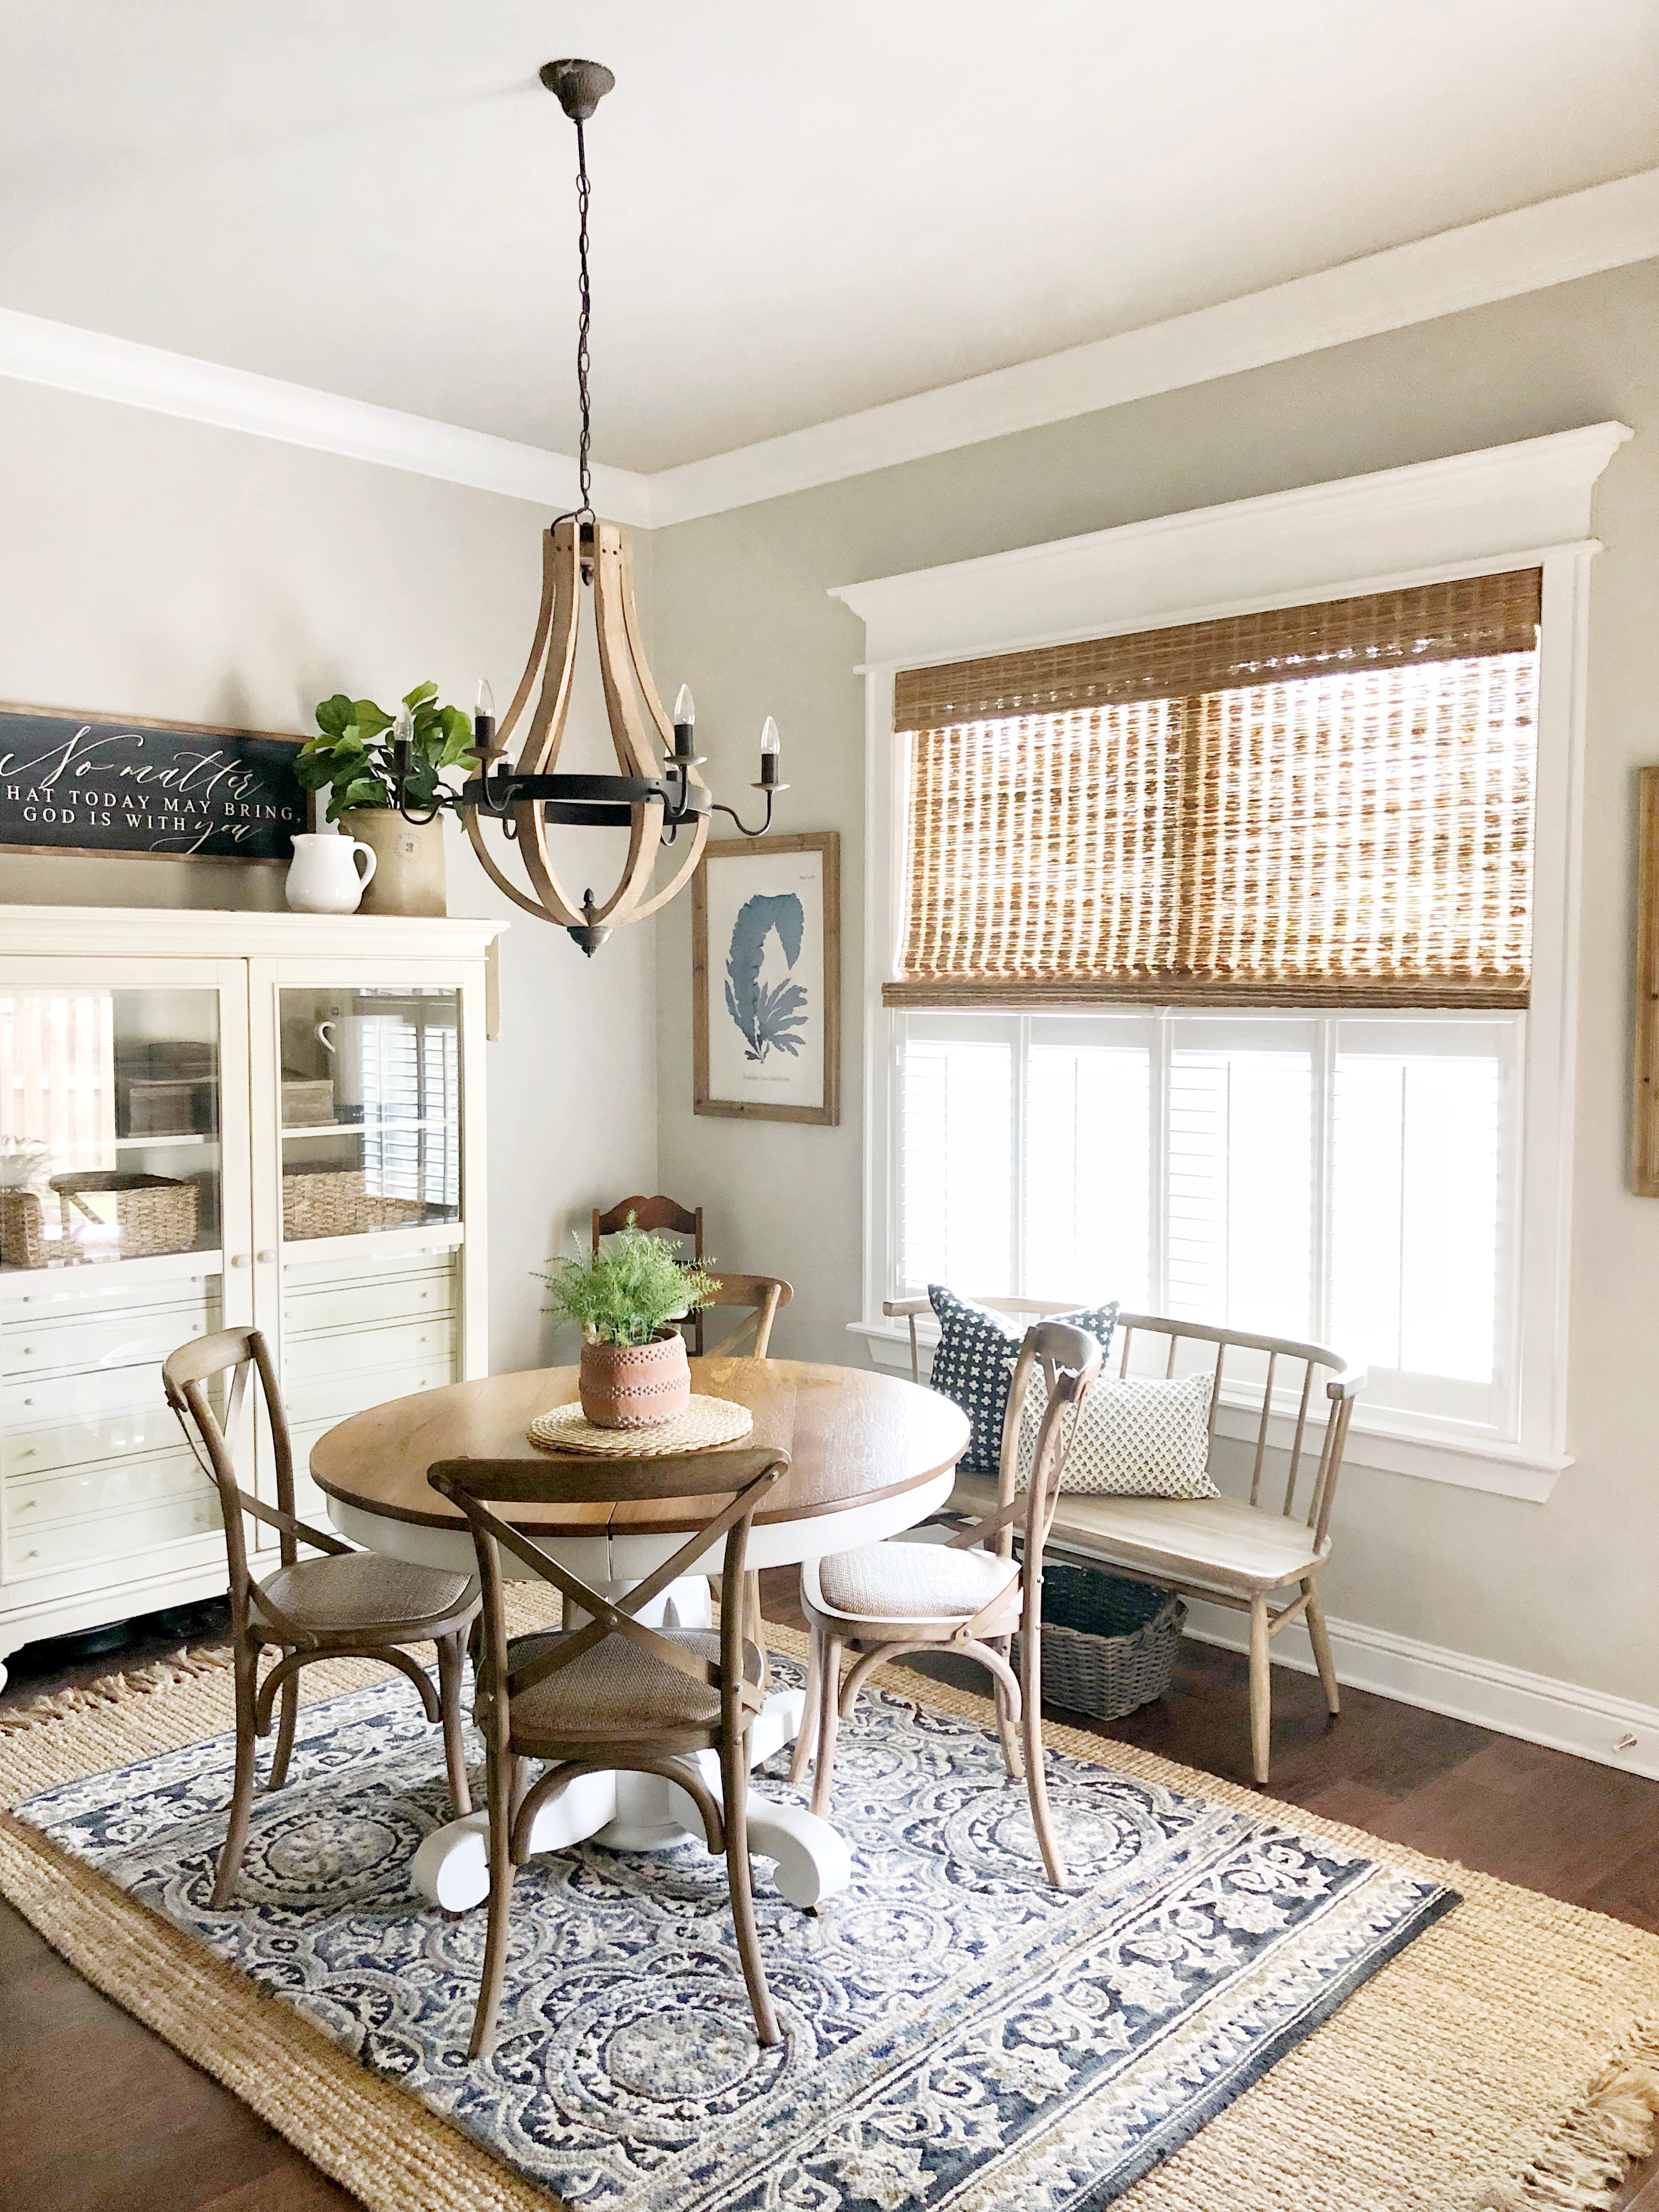 Enhancing Our Home With Cafe Shutters - Our Vintage Nest